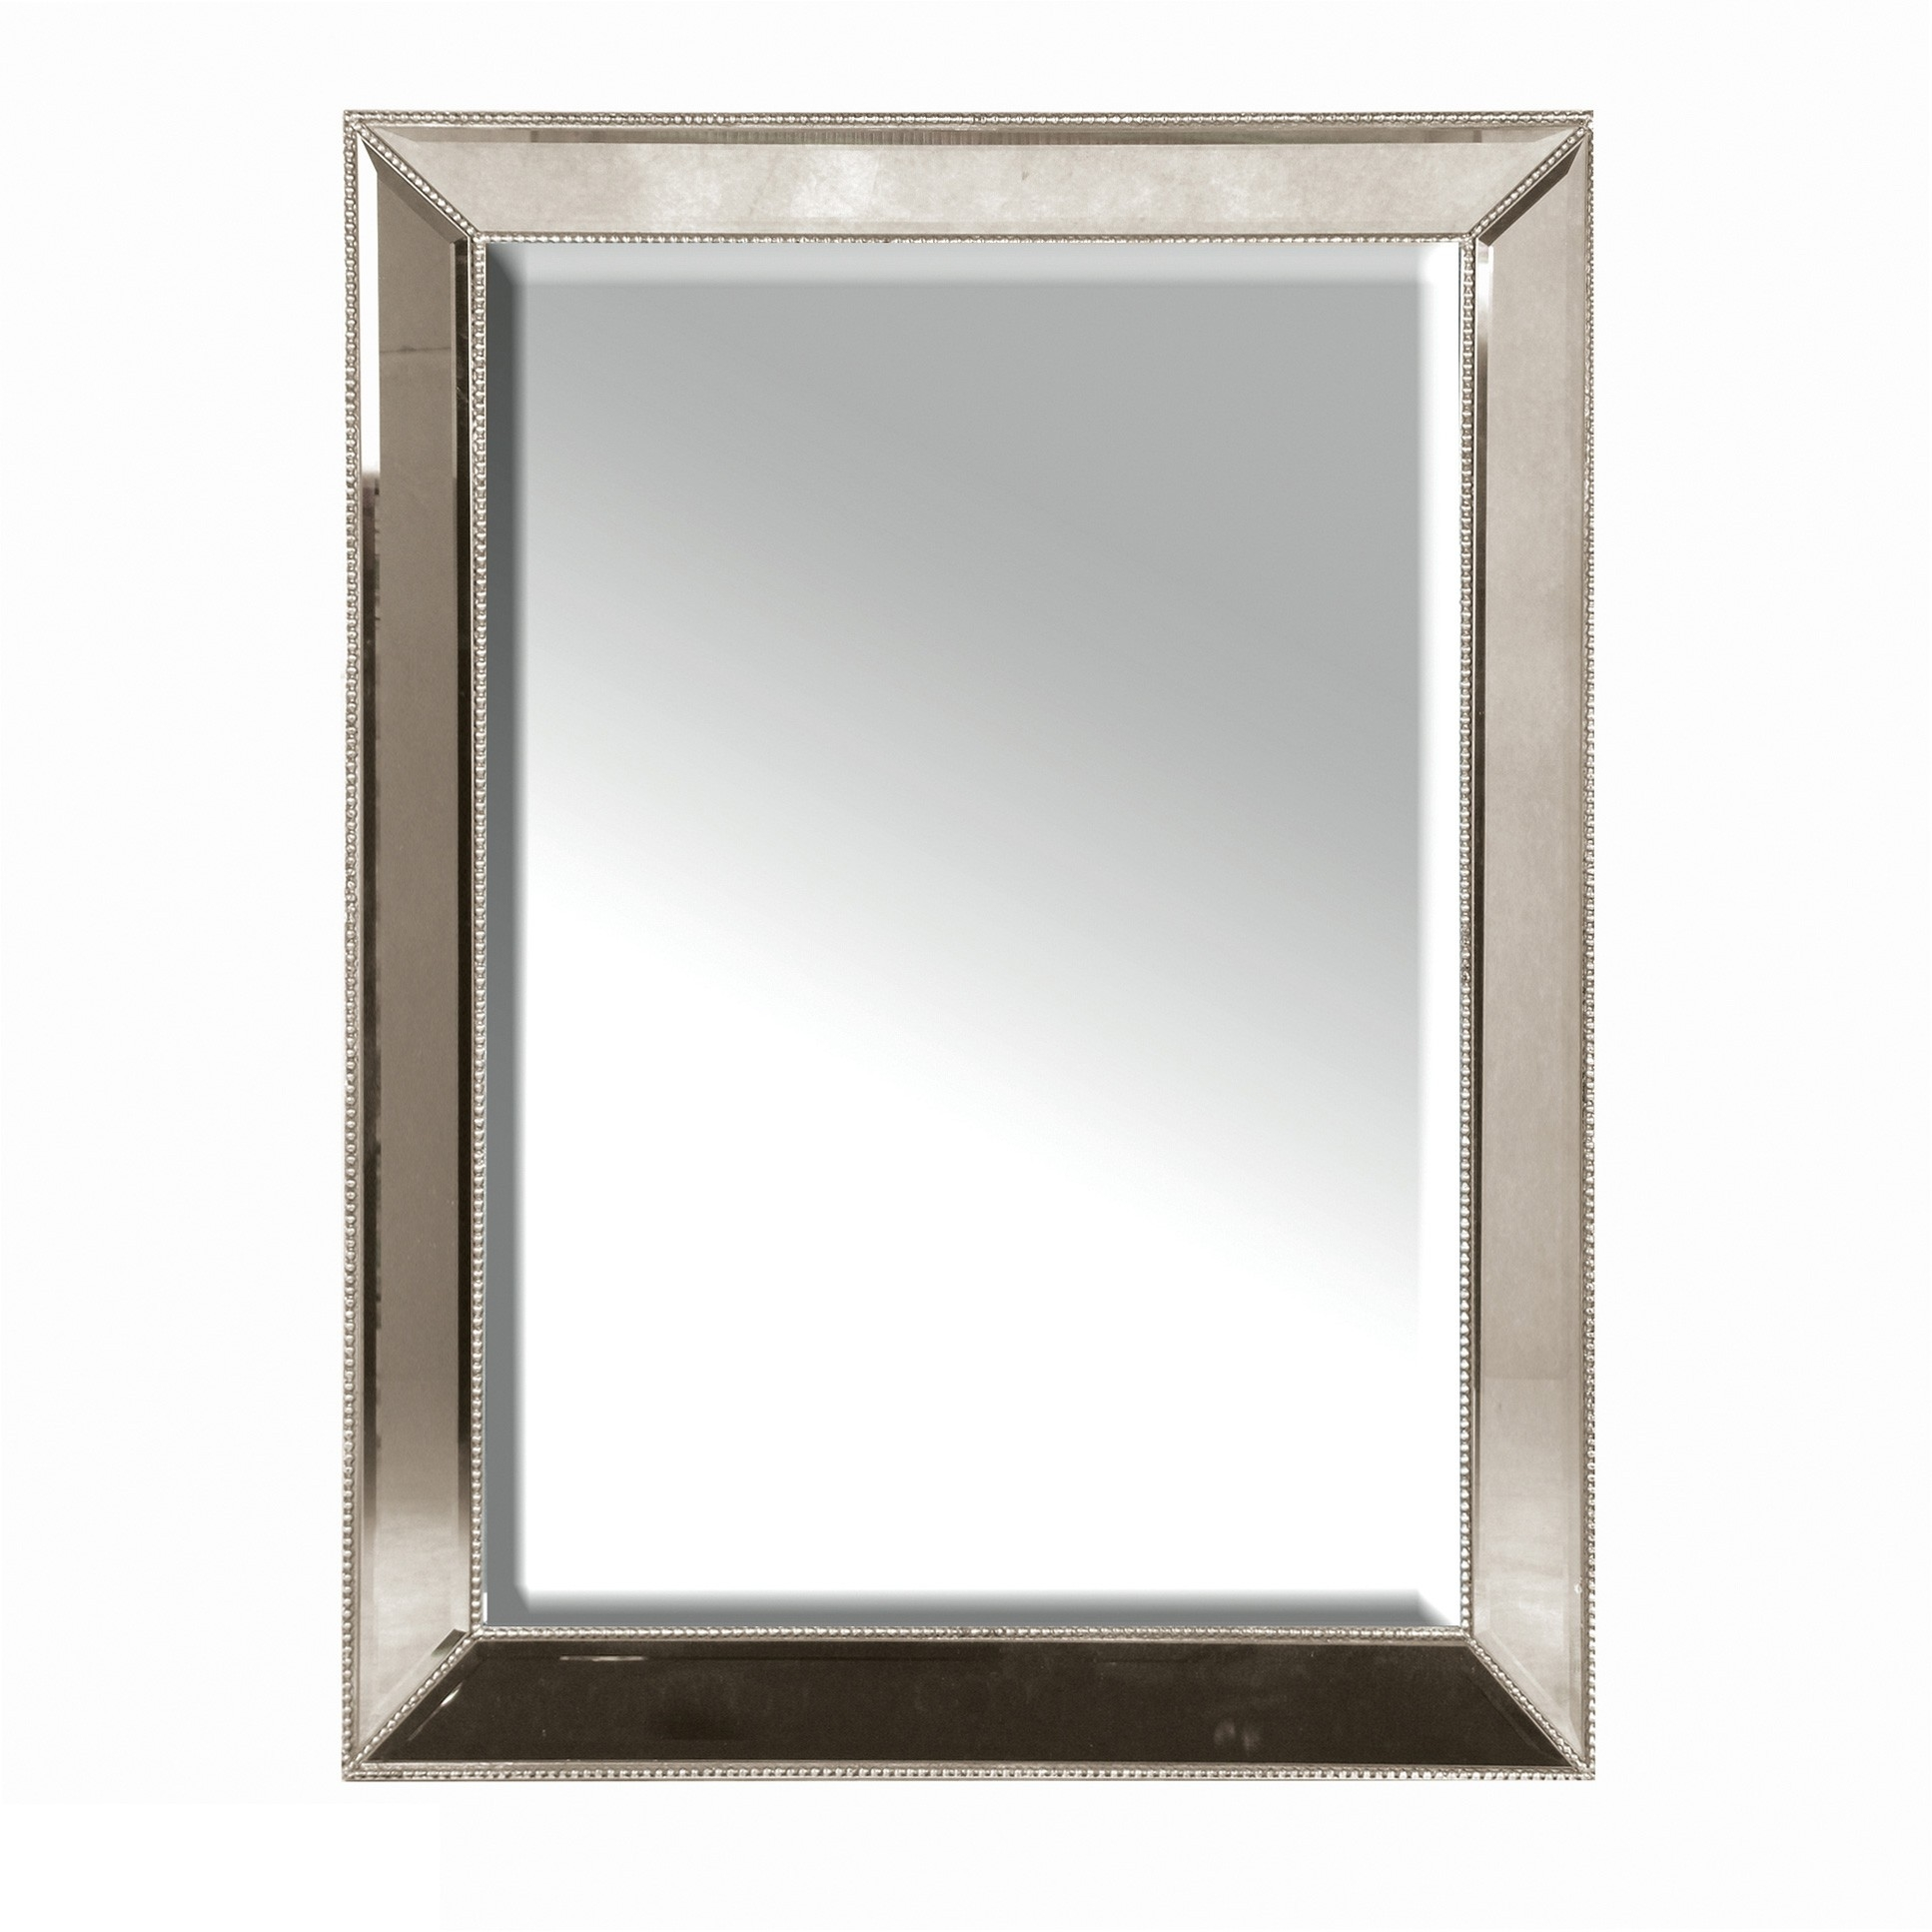 Venetian Mirror With Stud Frame For Square Venetian Mirror (Image 14 of 15)